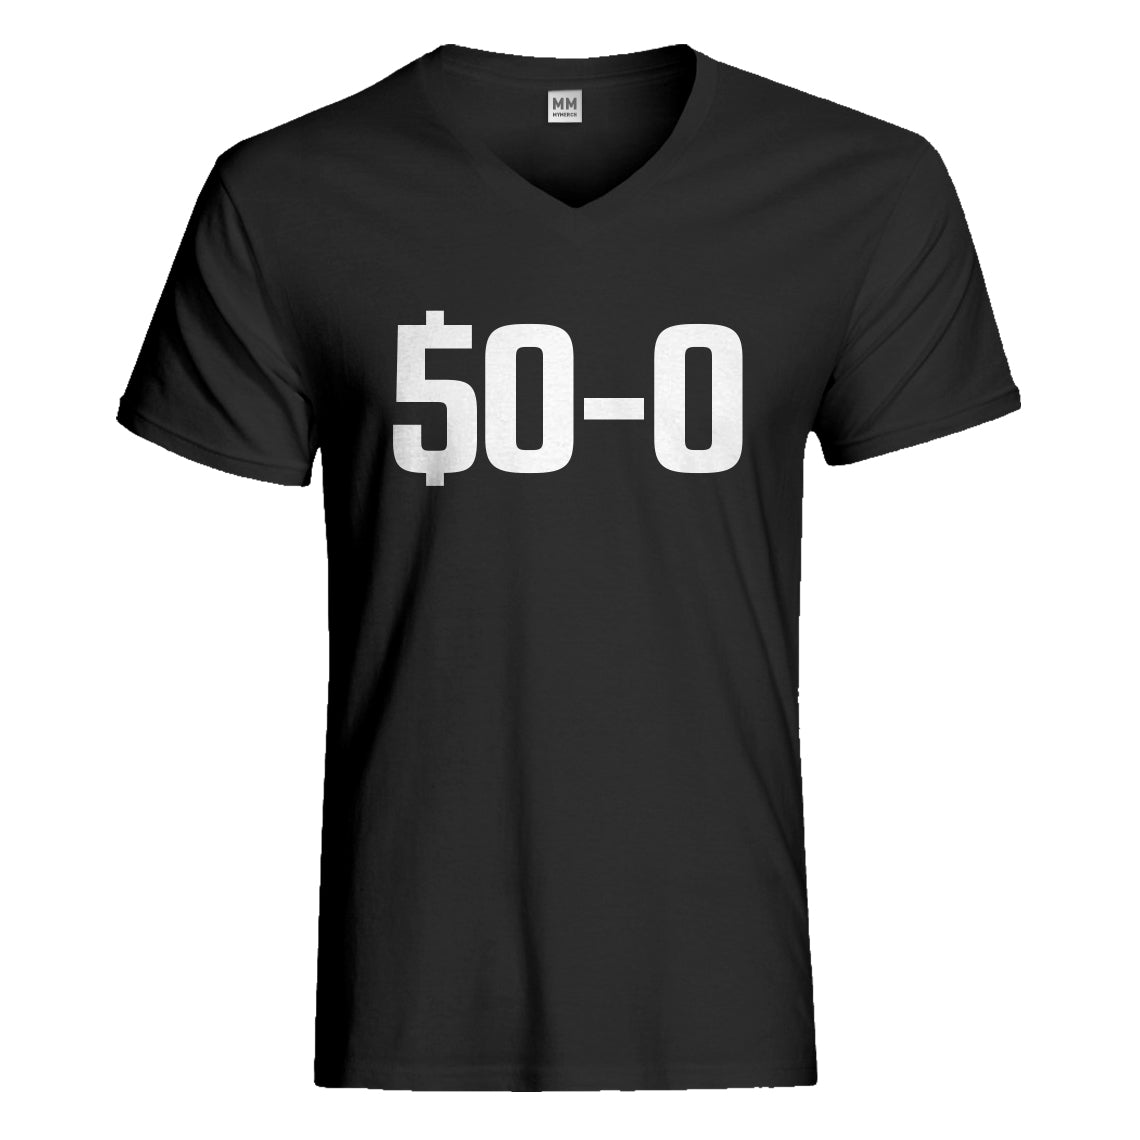 Mens 50-0 Undefeated Vneck T-shirt